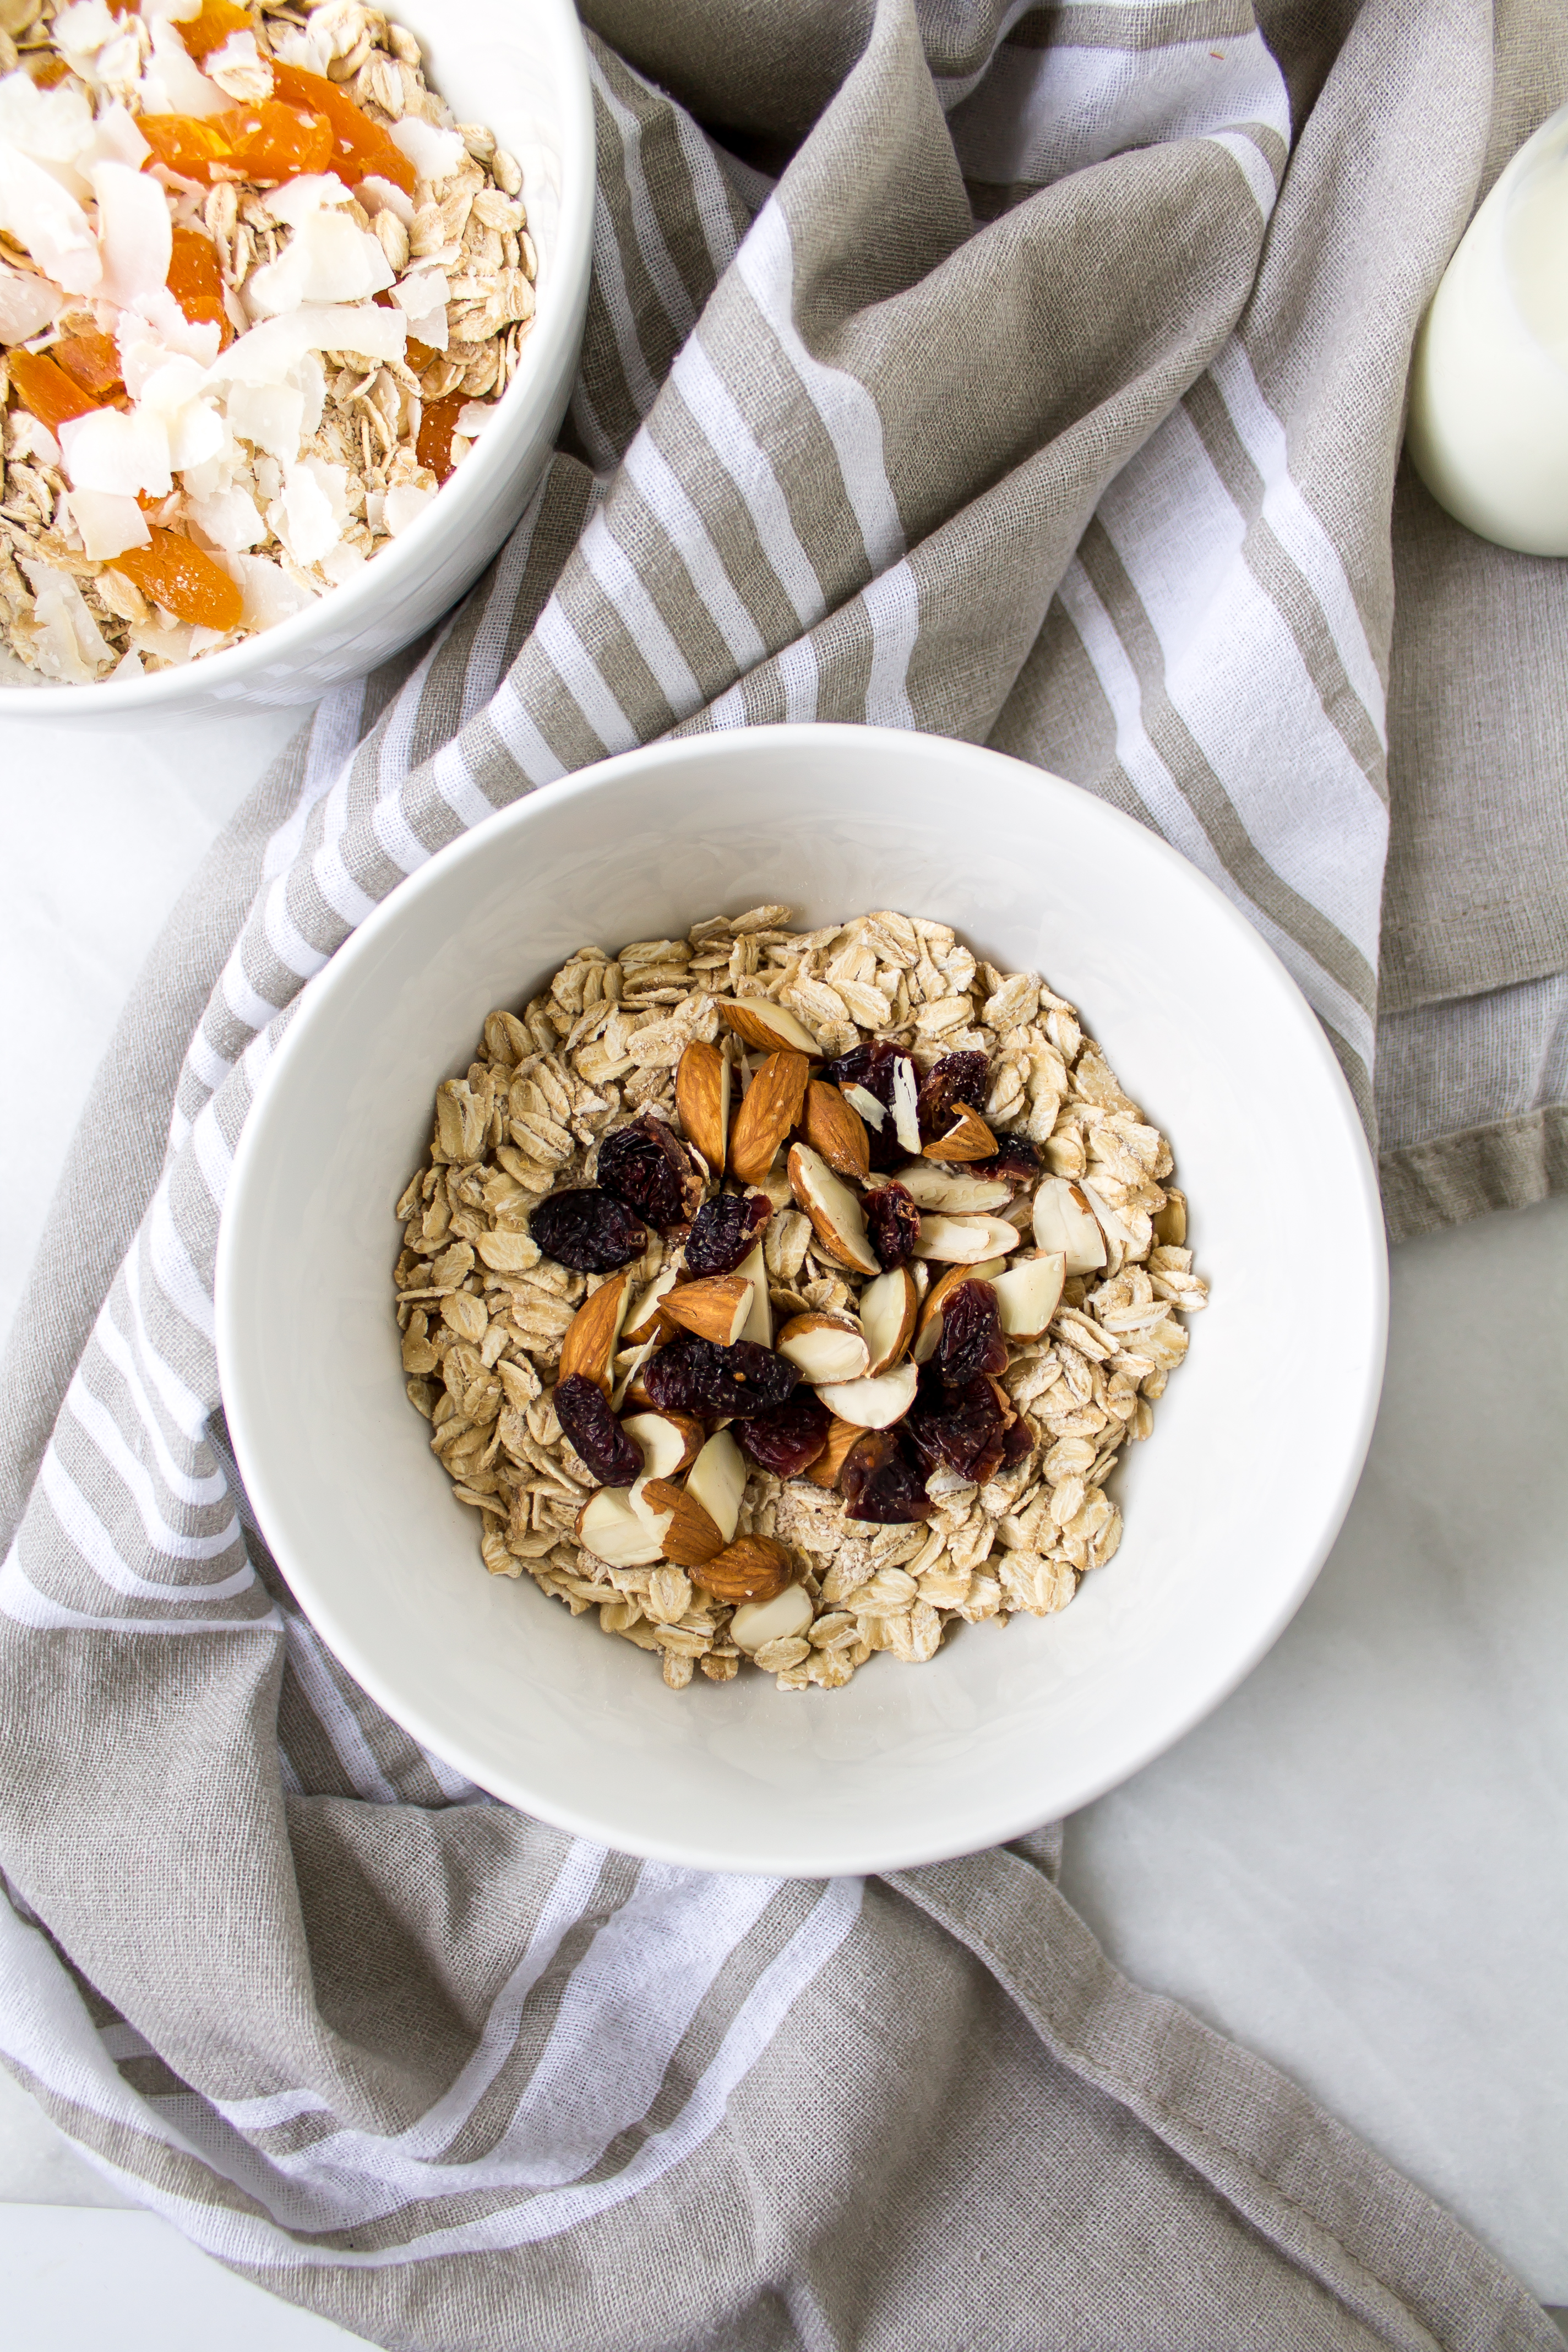 DIY instant oatmeal is the nutritious, easy way to start your busy mornings off right. It is portable and there are so many options for toppings! | Pass the Cookies | www.passthecookies.com